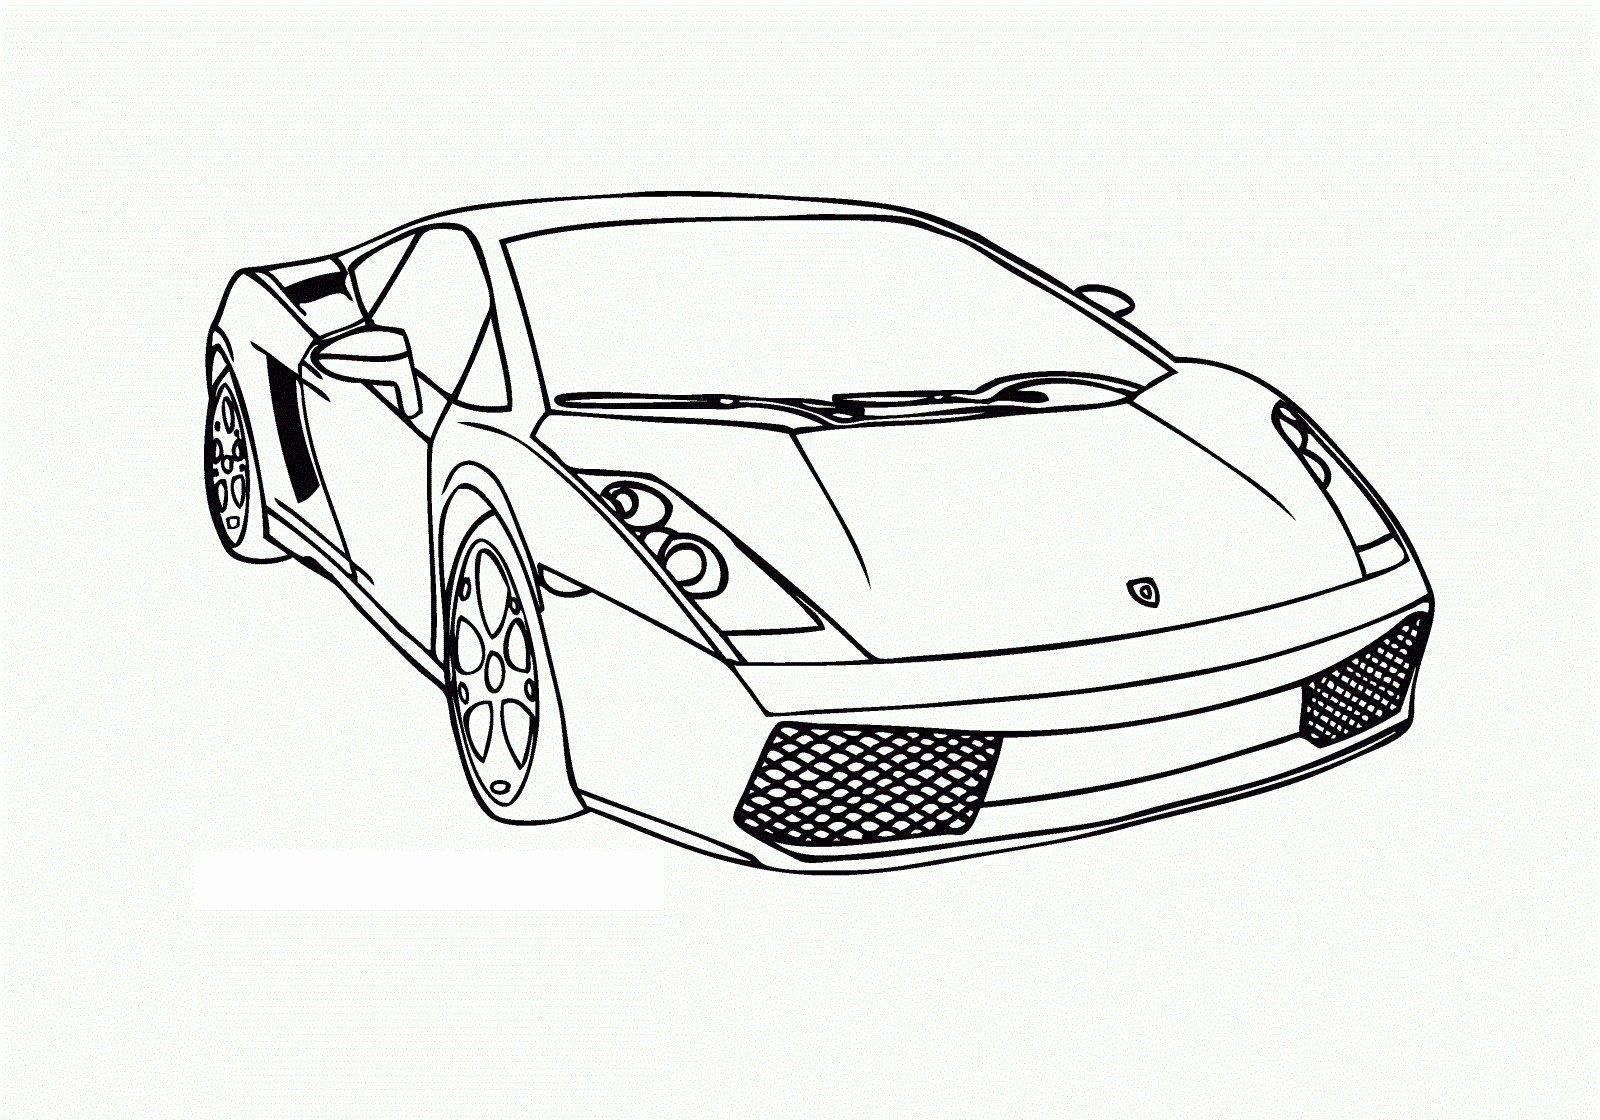 Space Coloring Book Pdf Lovely Space Race Car Coloring Page Kemixub Race Car Coloring Pages Cars Coloring Pages Sports Coloring Pages